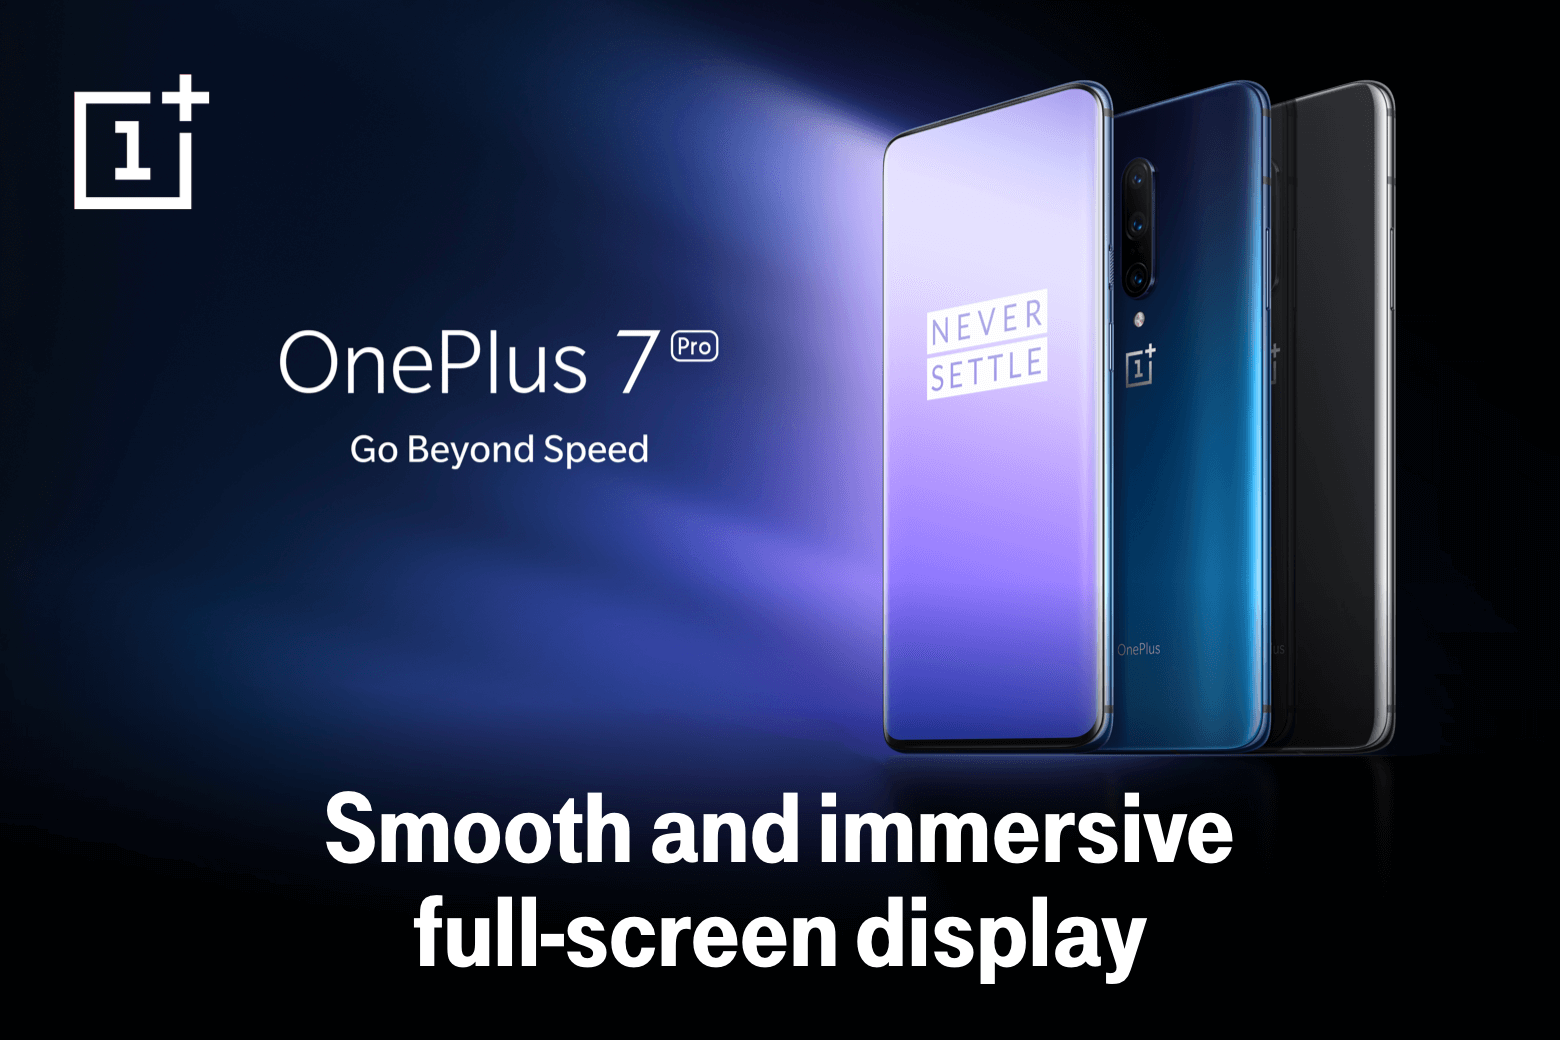 OnePlus 7 Pro. Smooth and immersive full-screen display